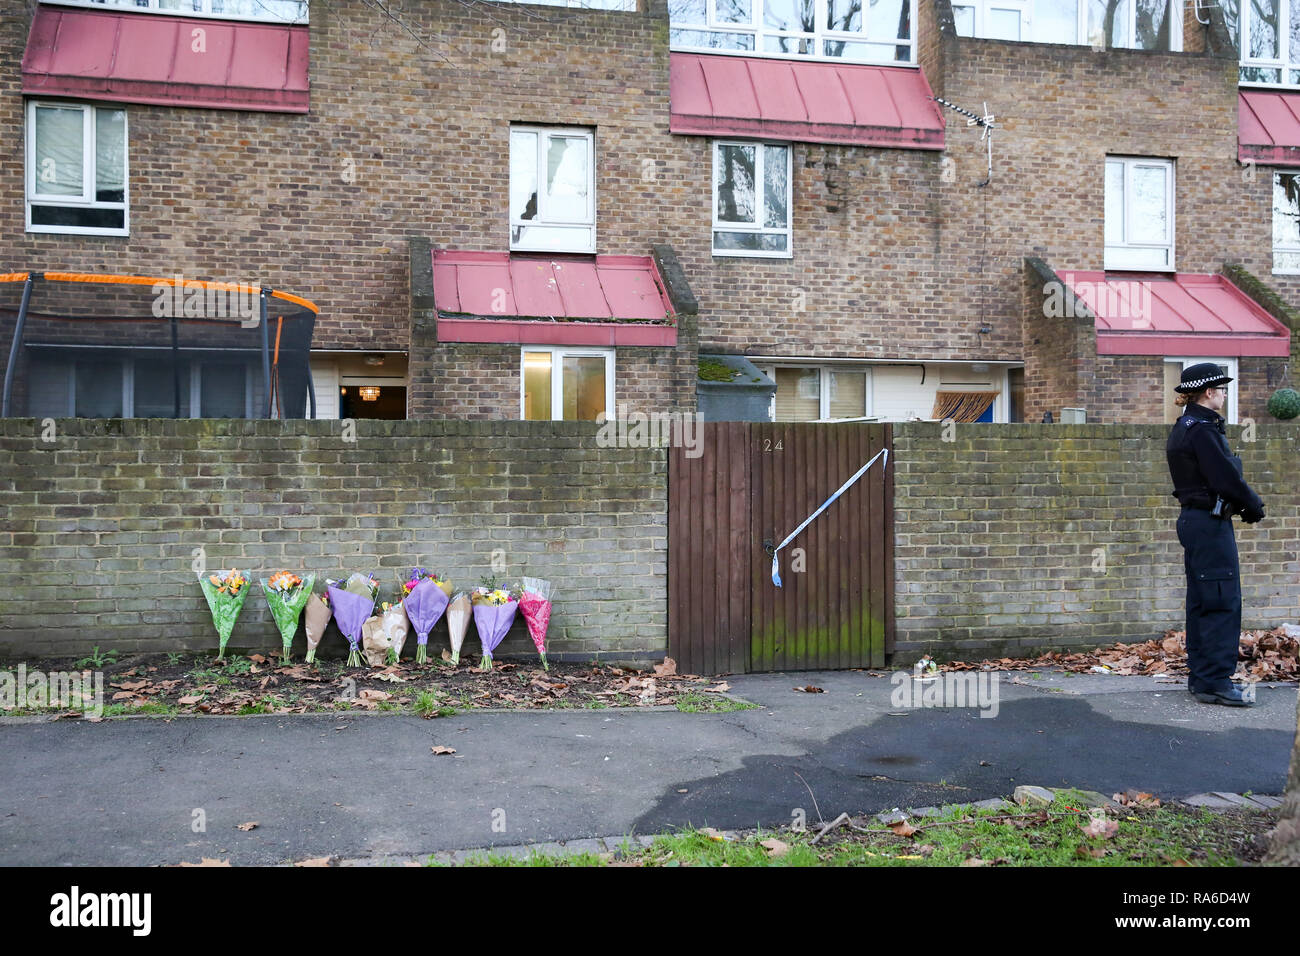 Southwark, London, UK 1 Jan 2019 - Floral tributes outside a house on John Ruskin Street in Camberwell, Southwark where a woman in her early 30s was stabbed to death early this morning.  Credit: Dinendra Haria/Alamy Live News - Stock Image